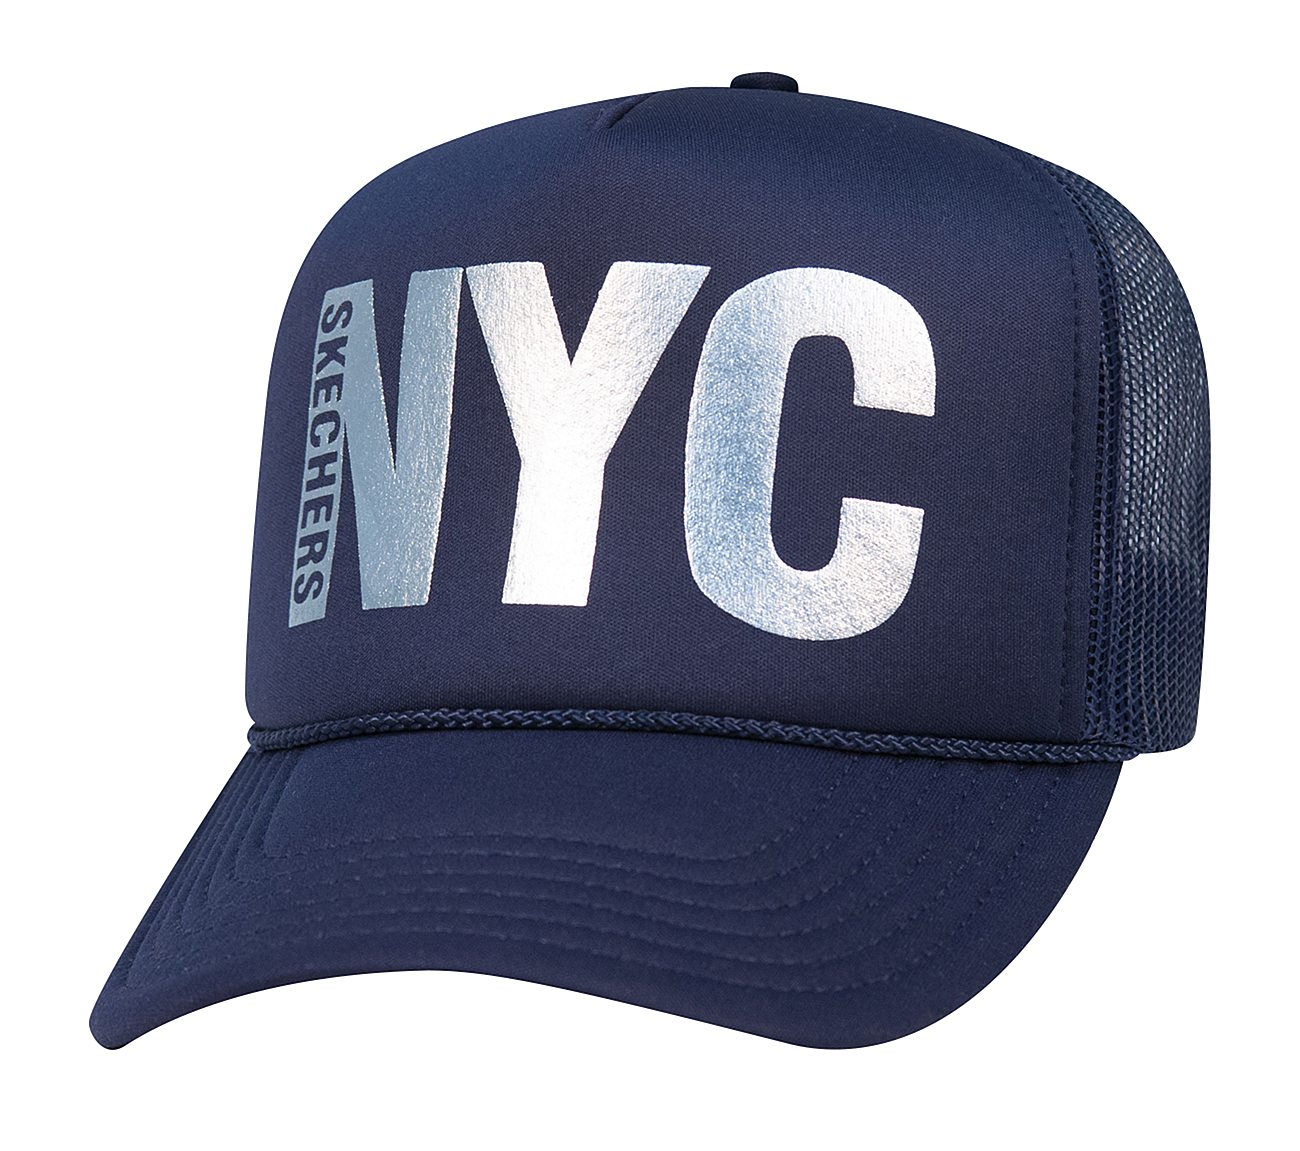 Buy SKECHERS City Hat - NYC Hats Shoes only  20.00 27b65ab2d65